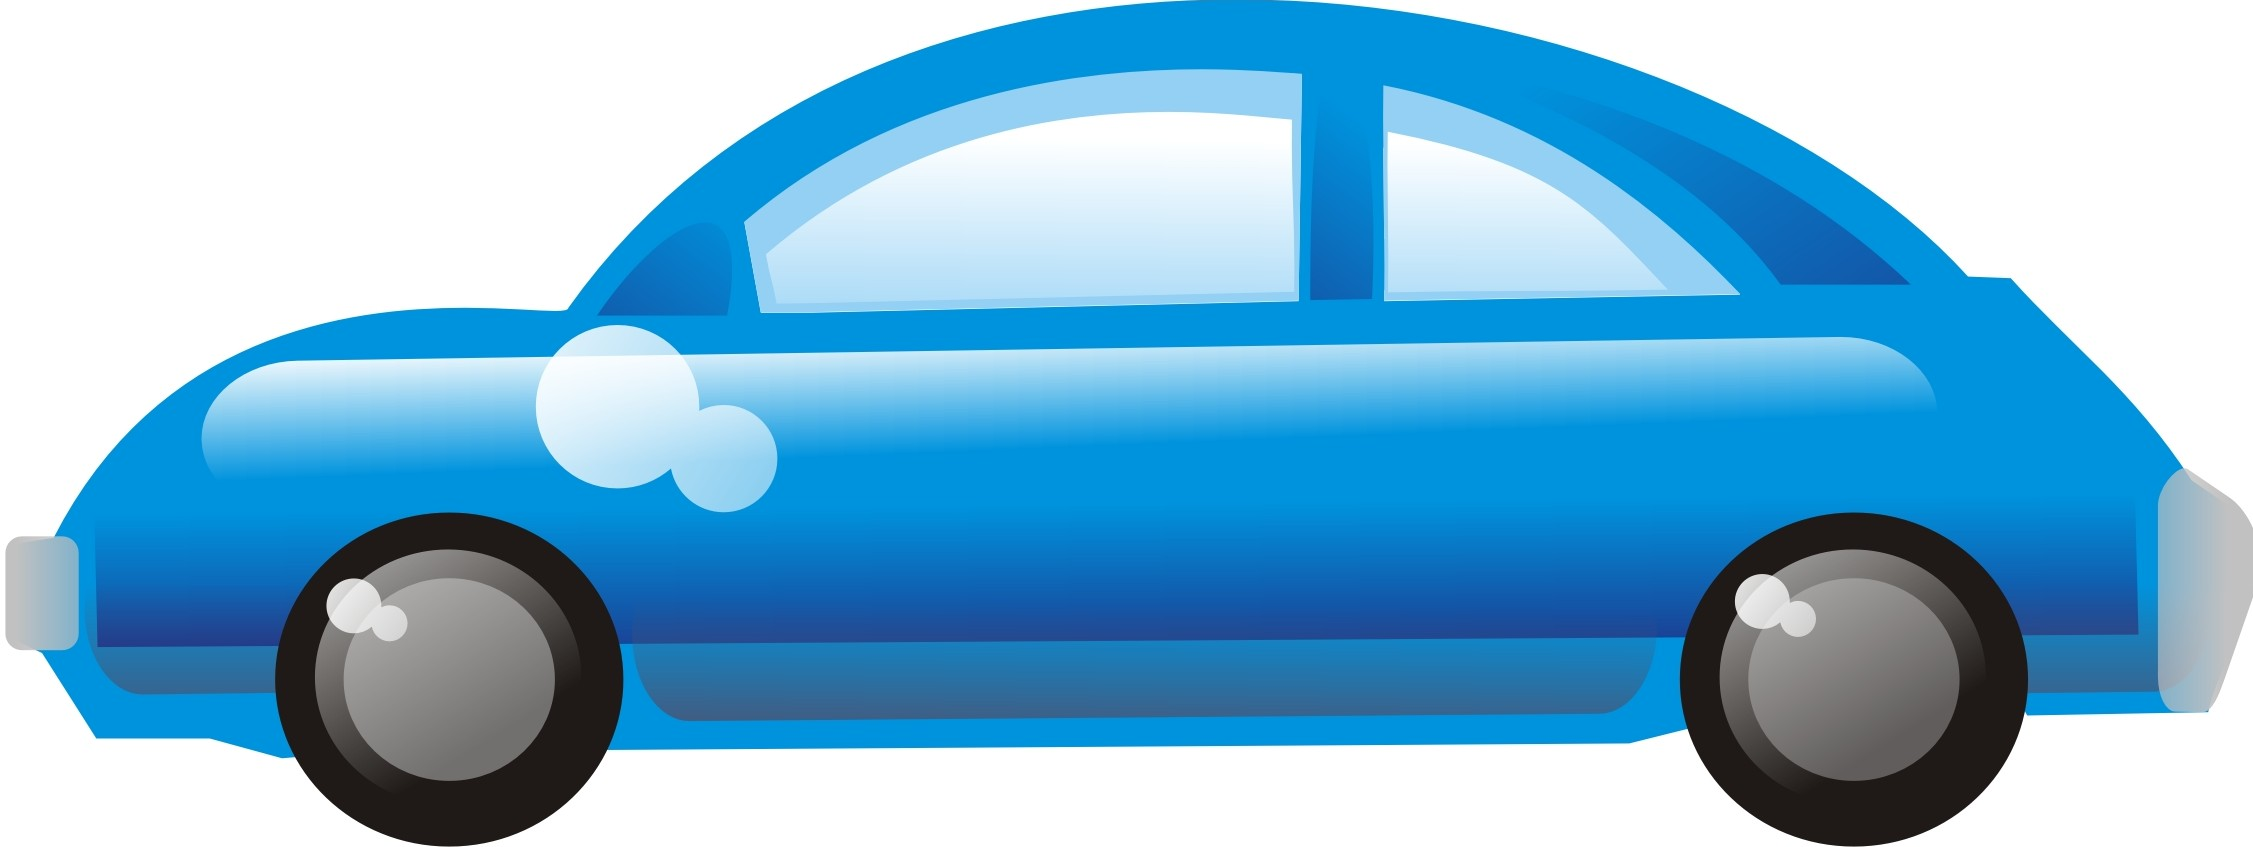 2253x847 Blue Car Clipart Today